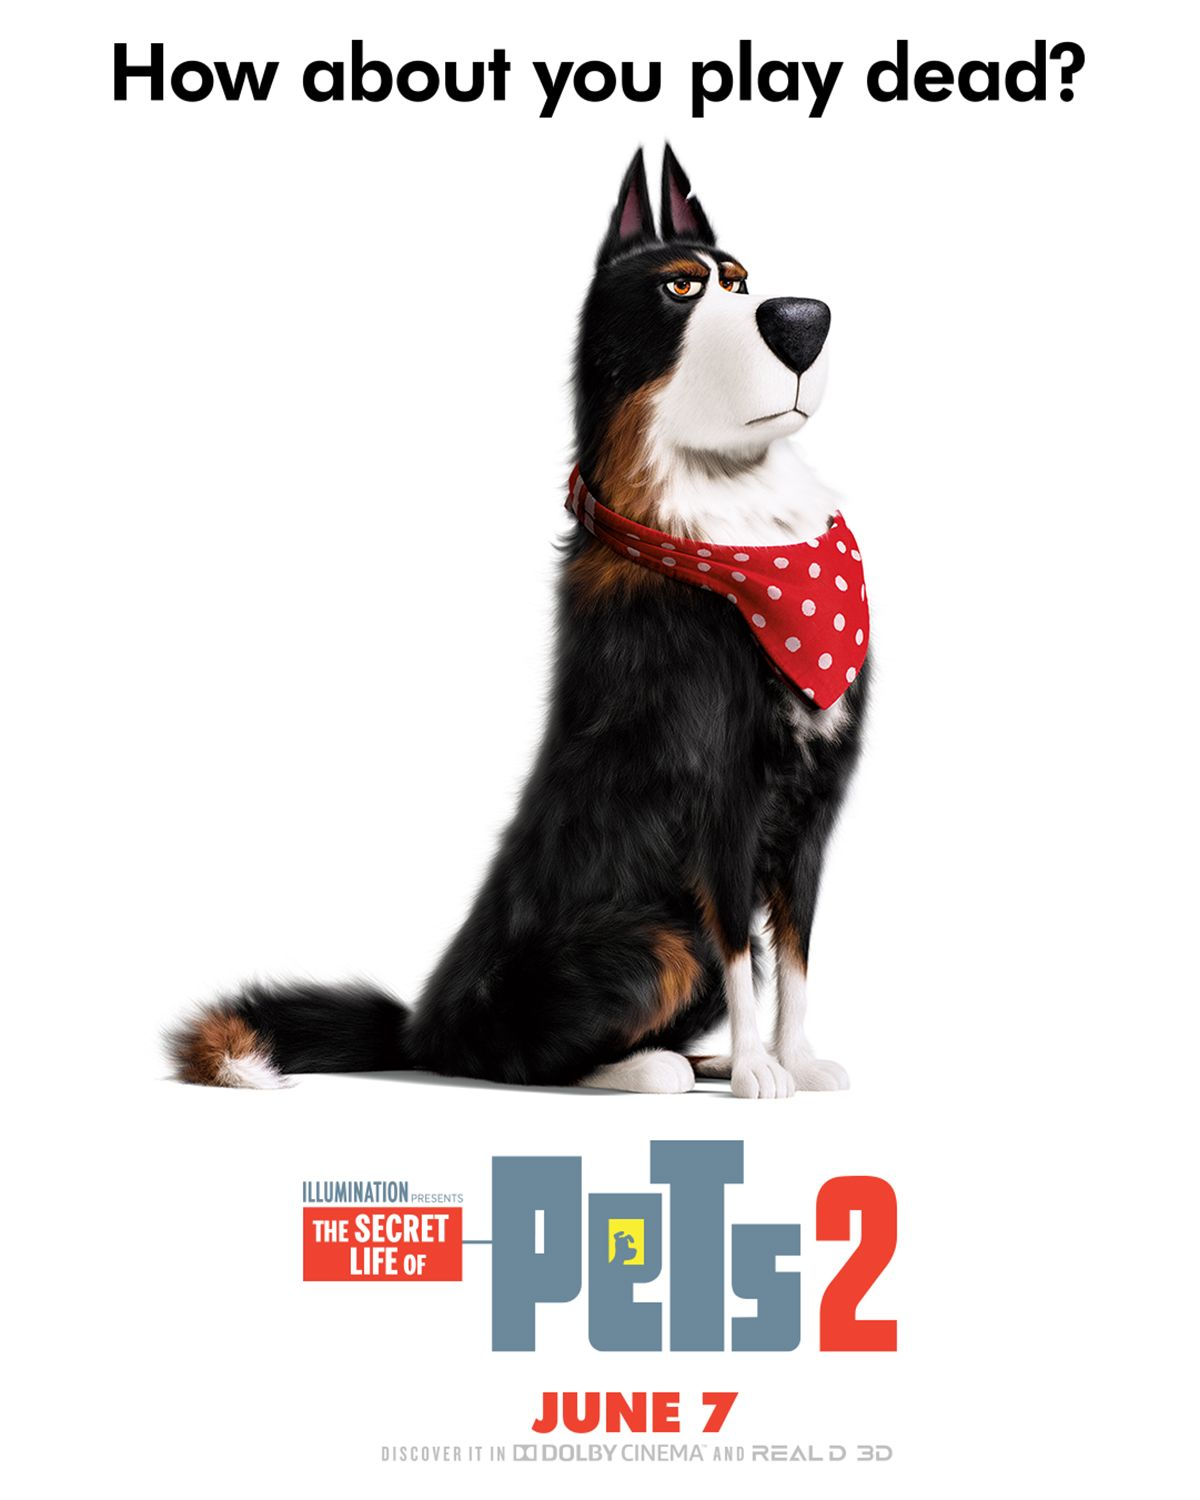 Harrison Ford Is Rooster The Pets Return This Summer In The New Movie The Secret Life Of Pets 2 Coming To Theaters June Secret Life Of Pets Pets Secret Life